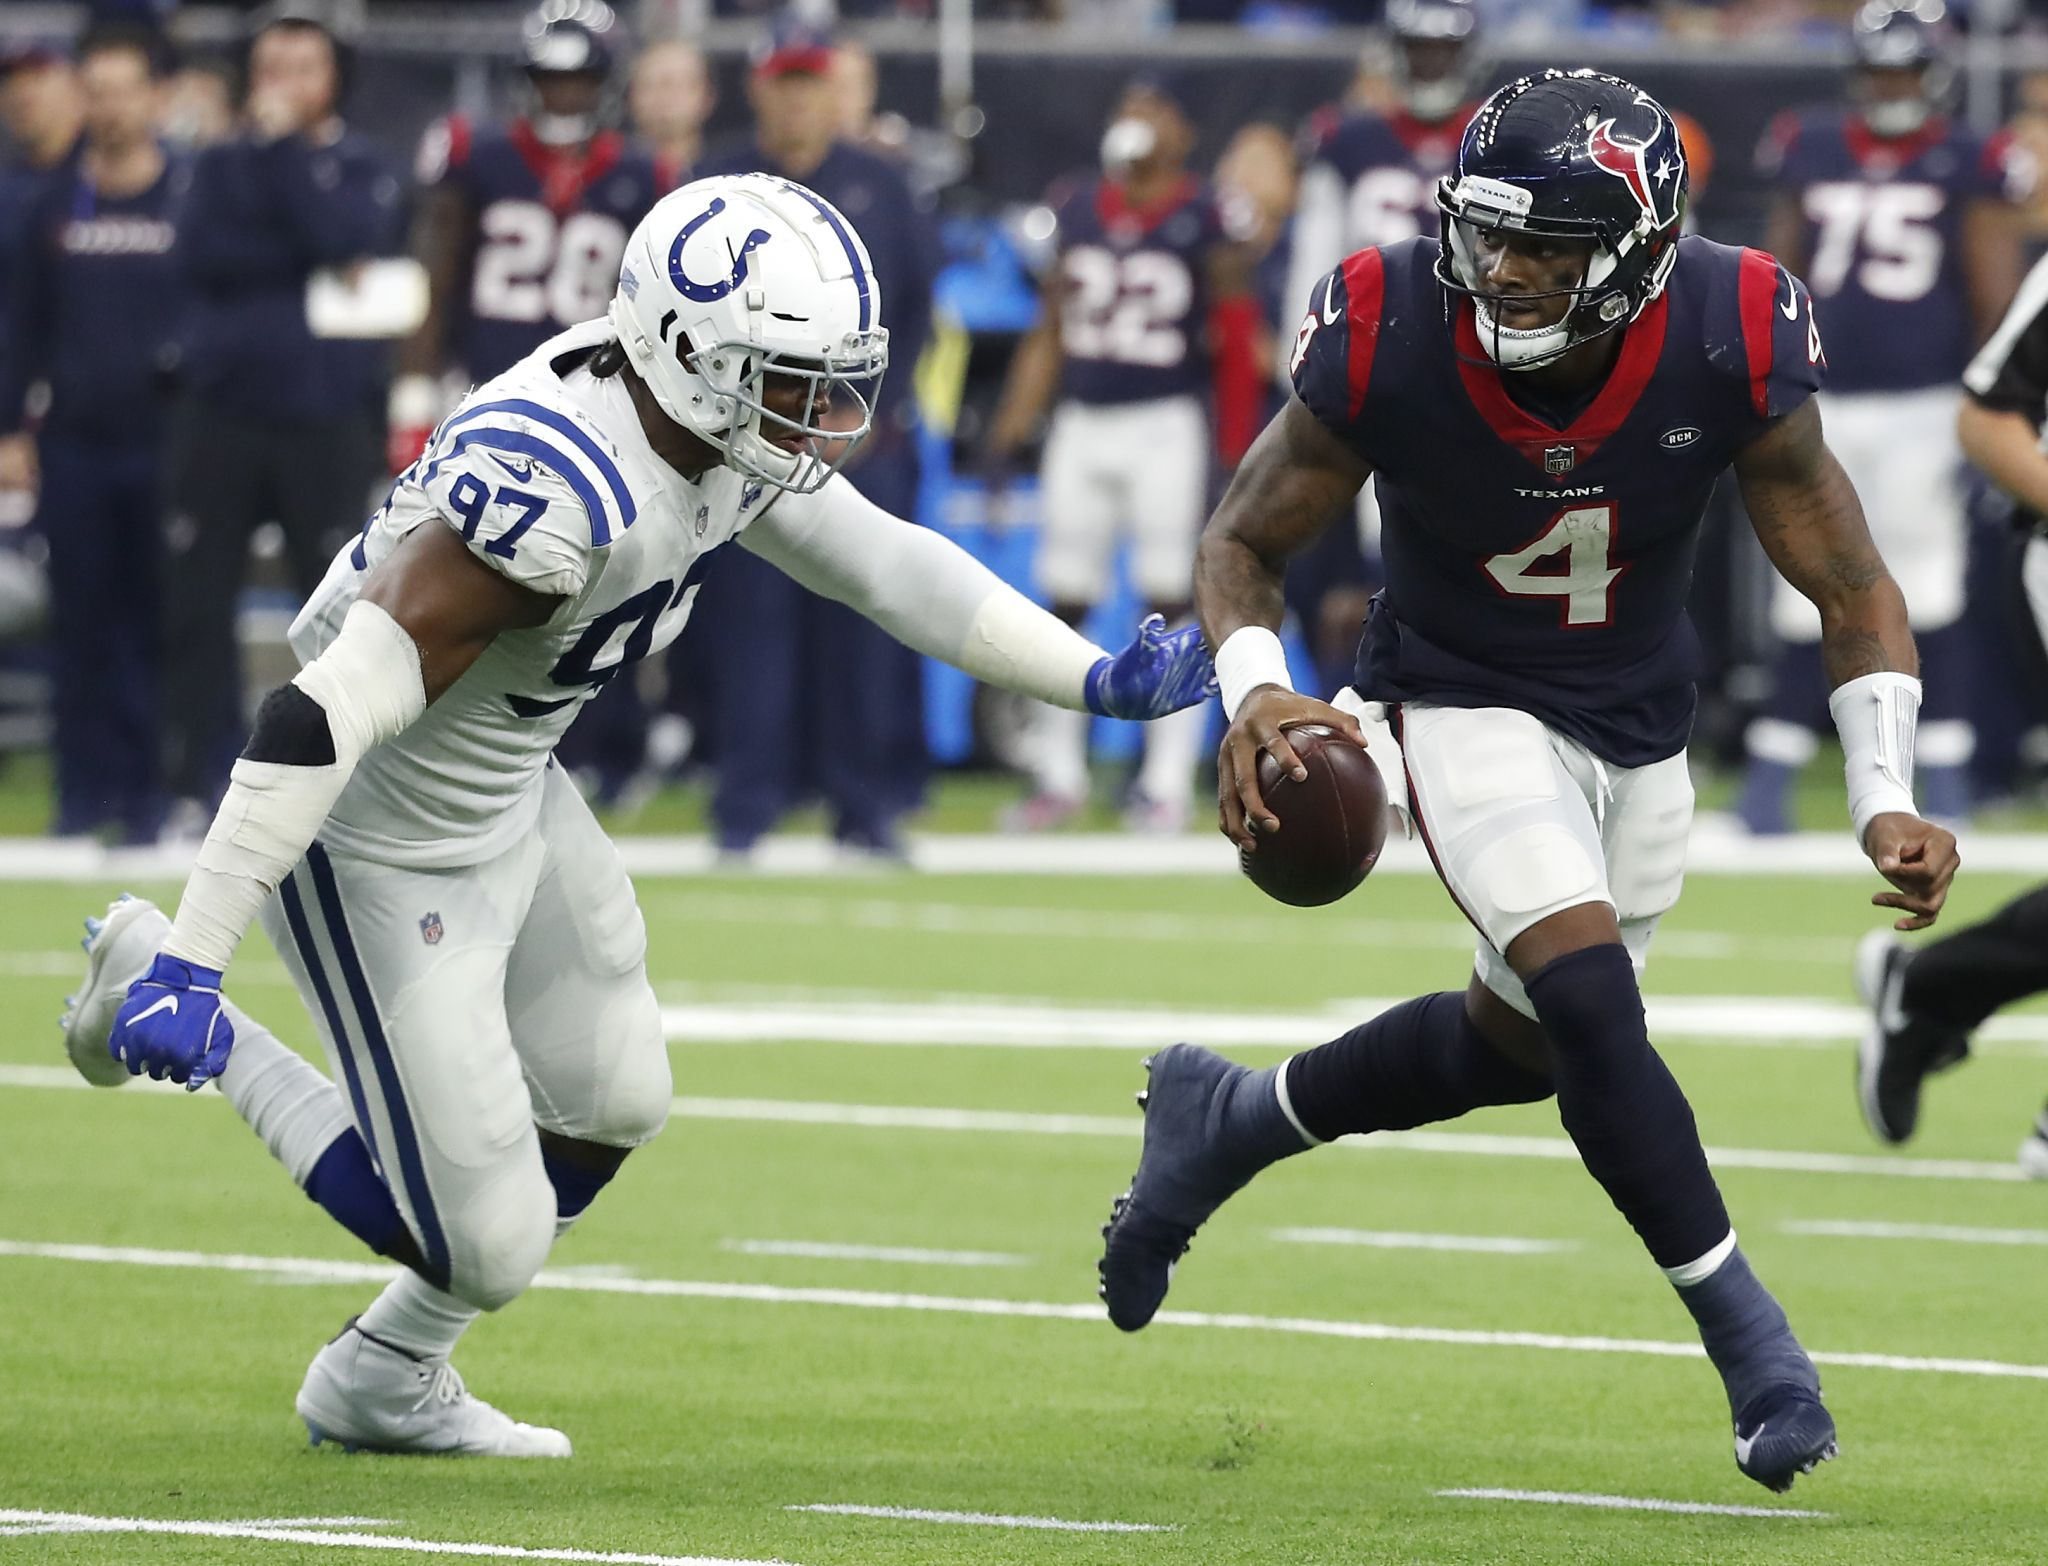 a07e85003 Texans vs. Colts  An early look at AFC wild-card round -  HoustonChronicle.com